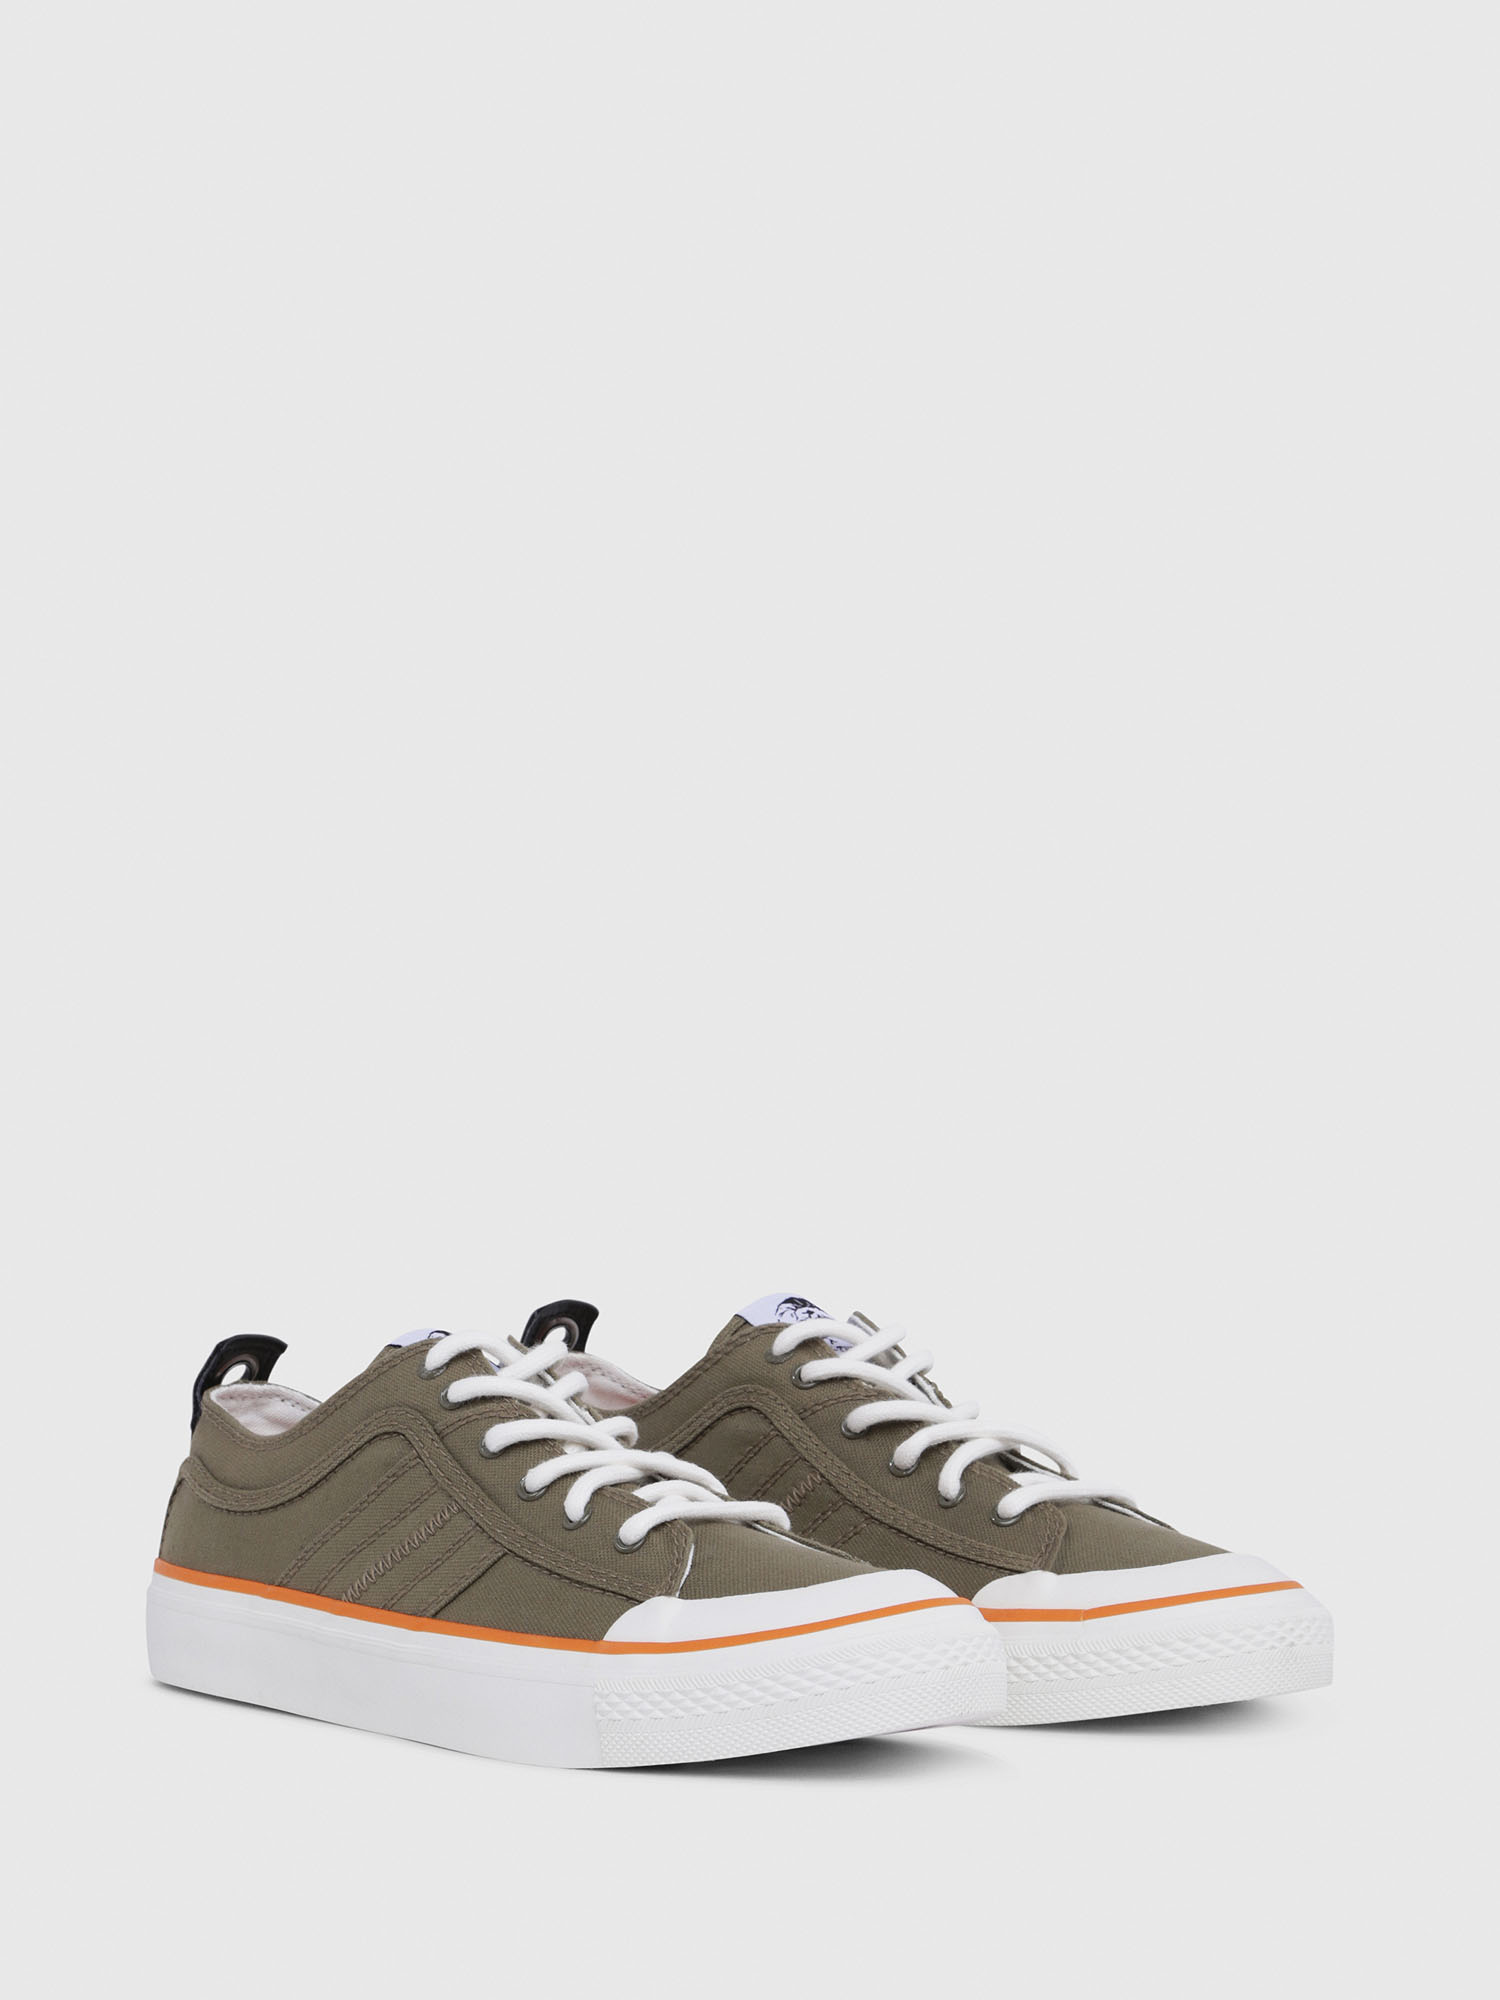 Diesel - S-ASTICO LC LOGO,  - Sneakers - Image 2